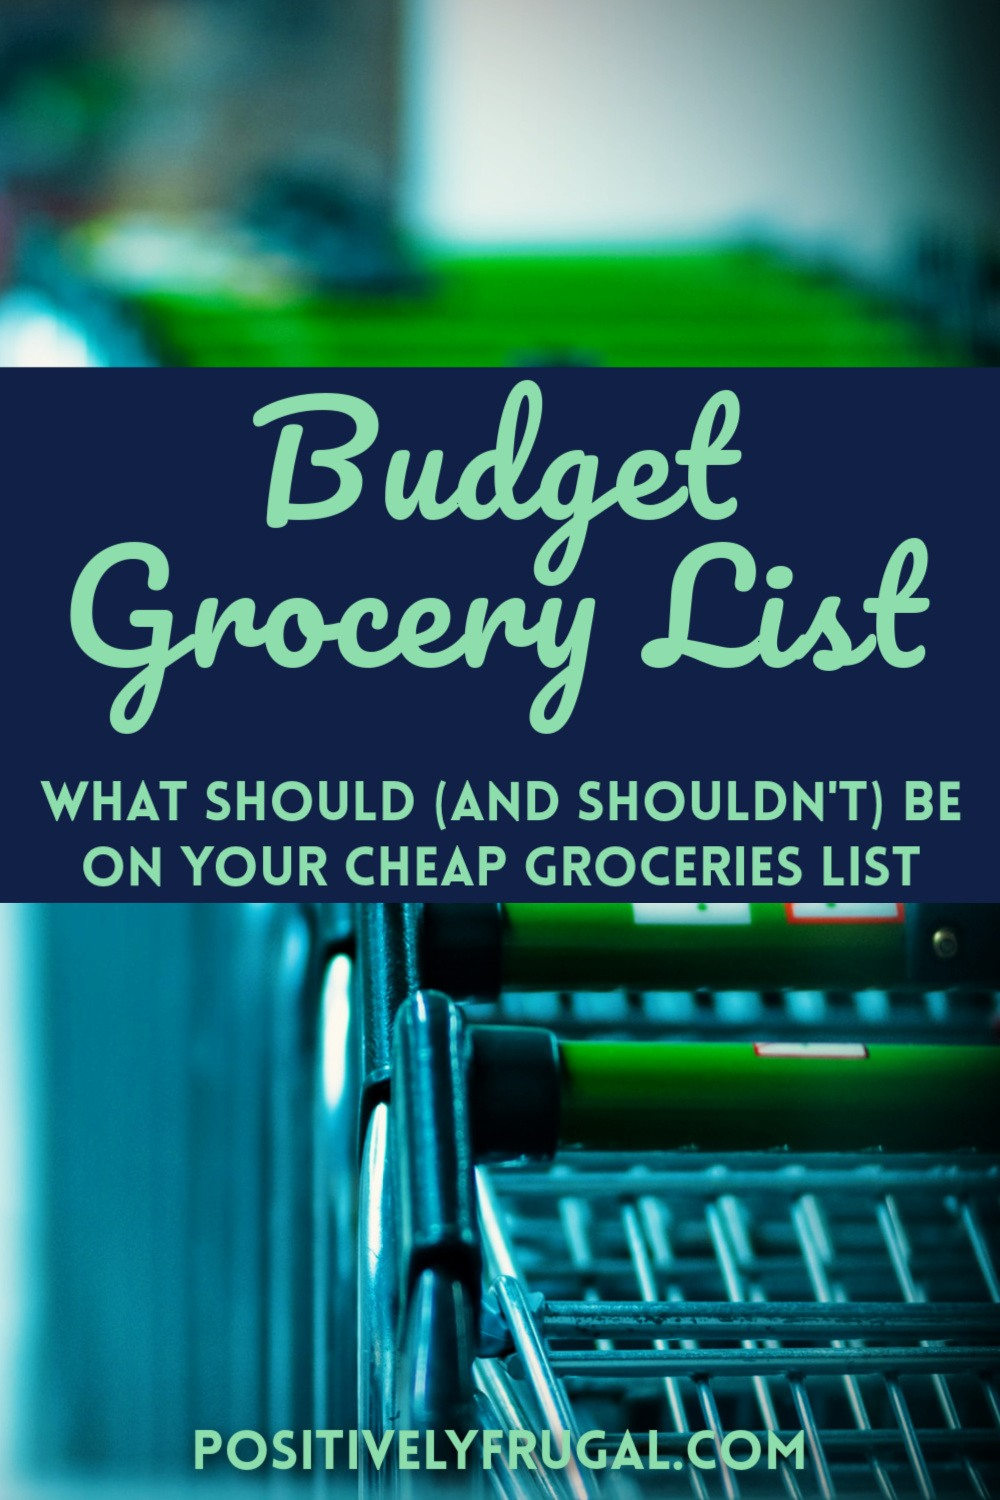 A Budget Grocery List by PositivelyFrugal.com